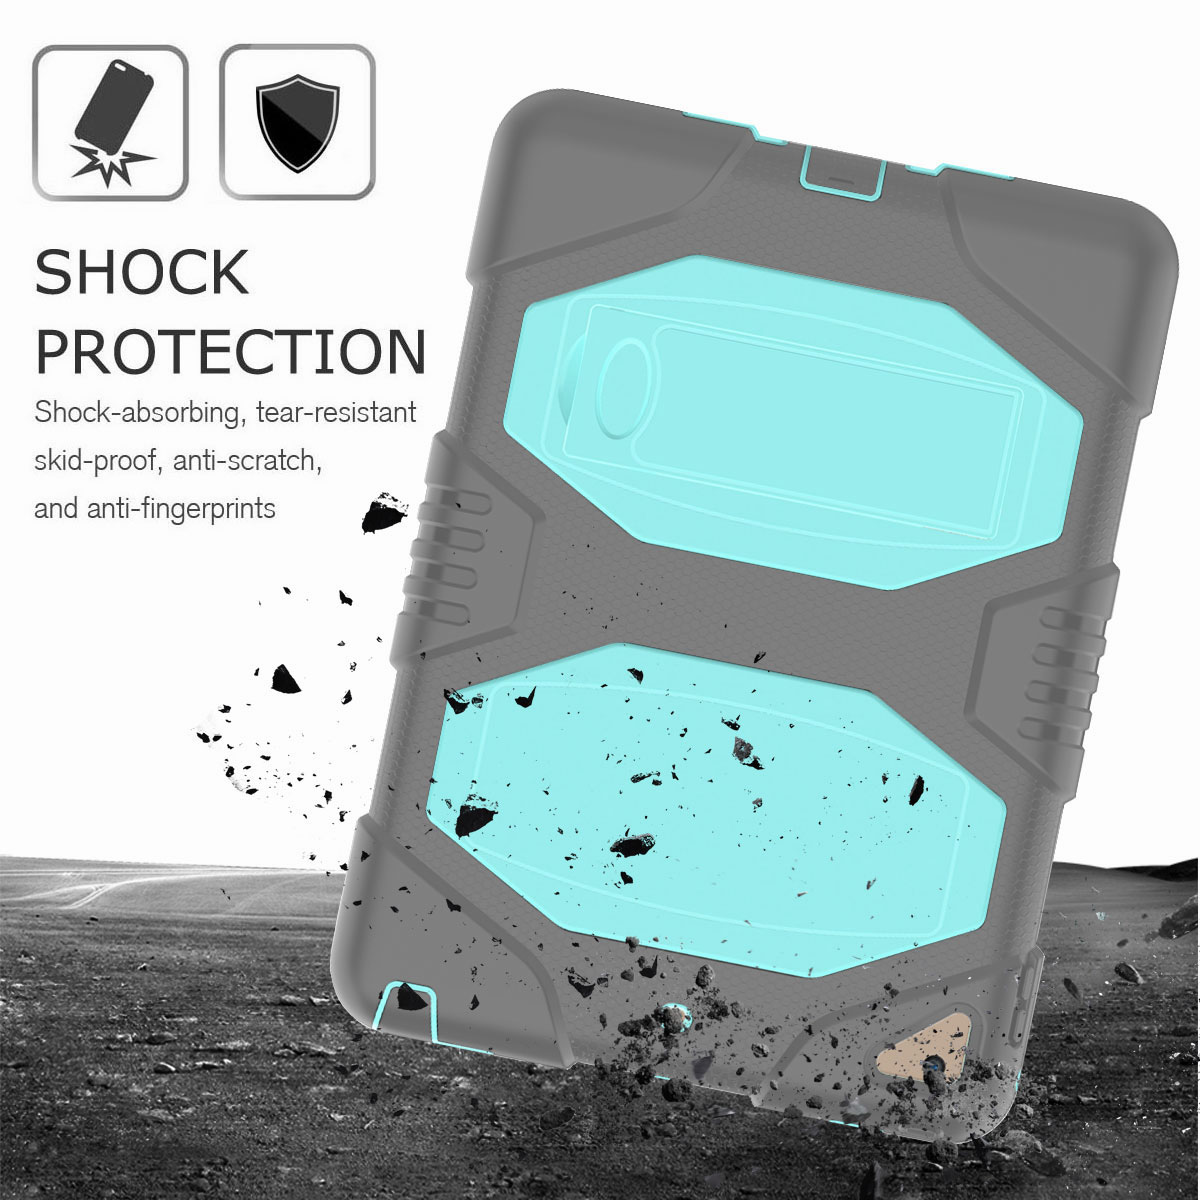 Hybrid-Rubber-Heavy-Duty-Shockproof-Case-Cover-For-iPad-9-7-6th-Generation-2018 thumbnail 96